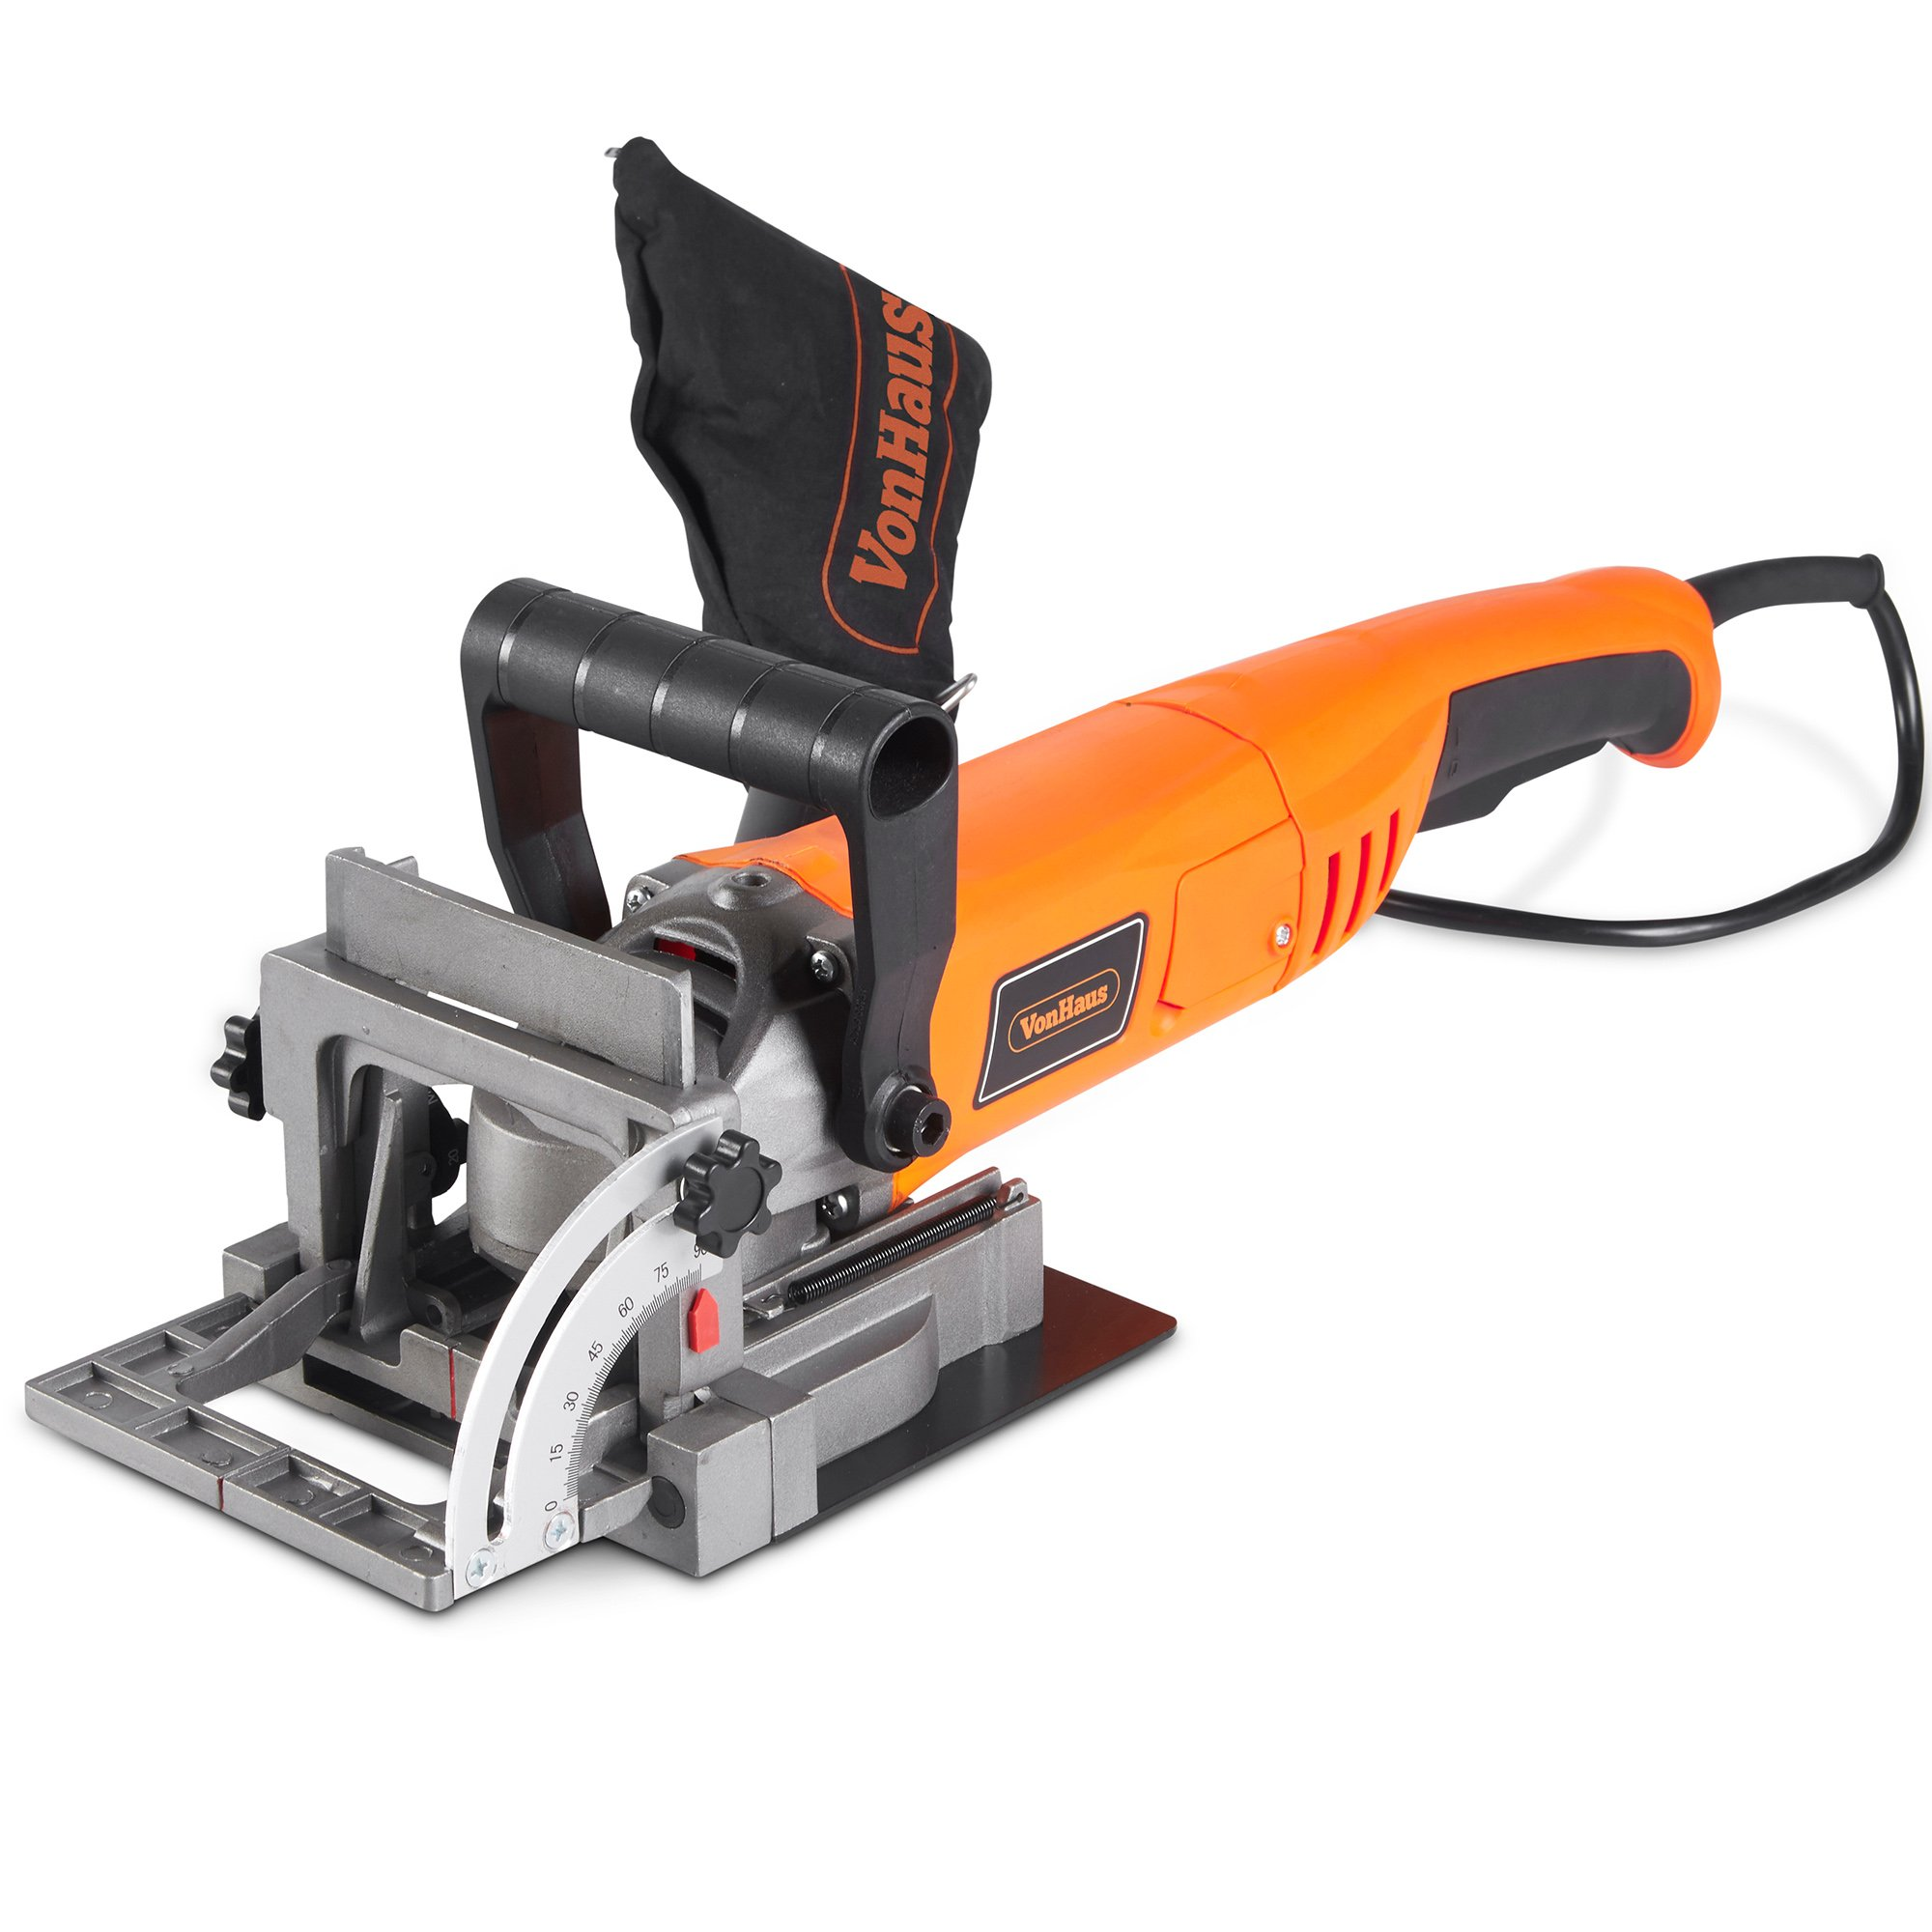 VonHaus 8.5 Amp Wood Biscuit Plate Joiner with 4'' Tungsten Carbide Tipped Blade, Adjustable Angle and Dust Bag - Suitable For All Wood Types